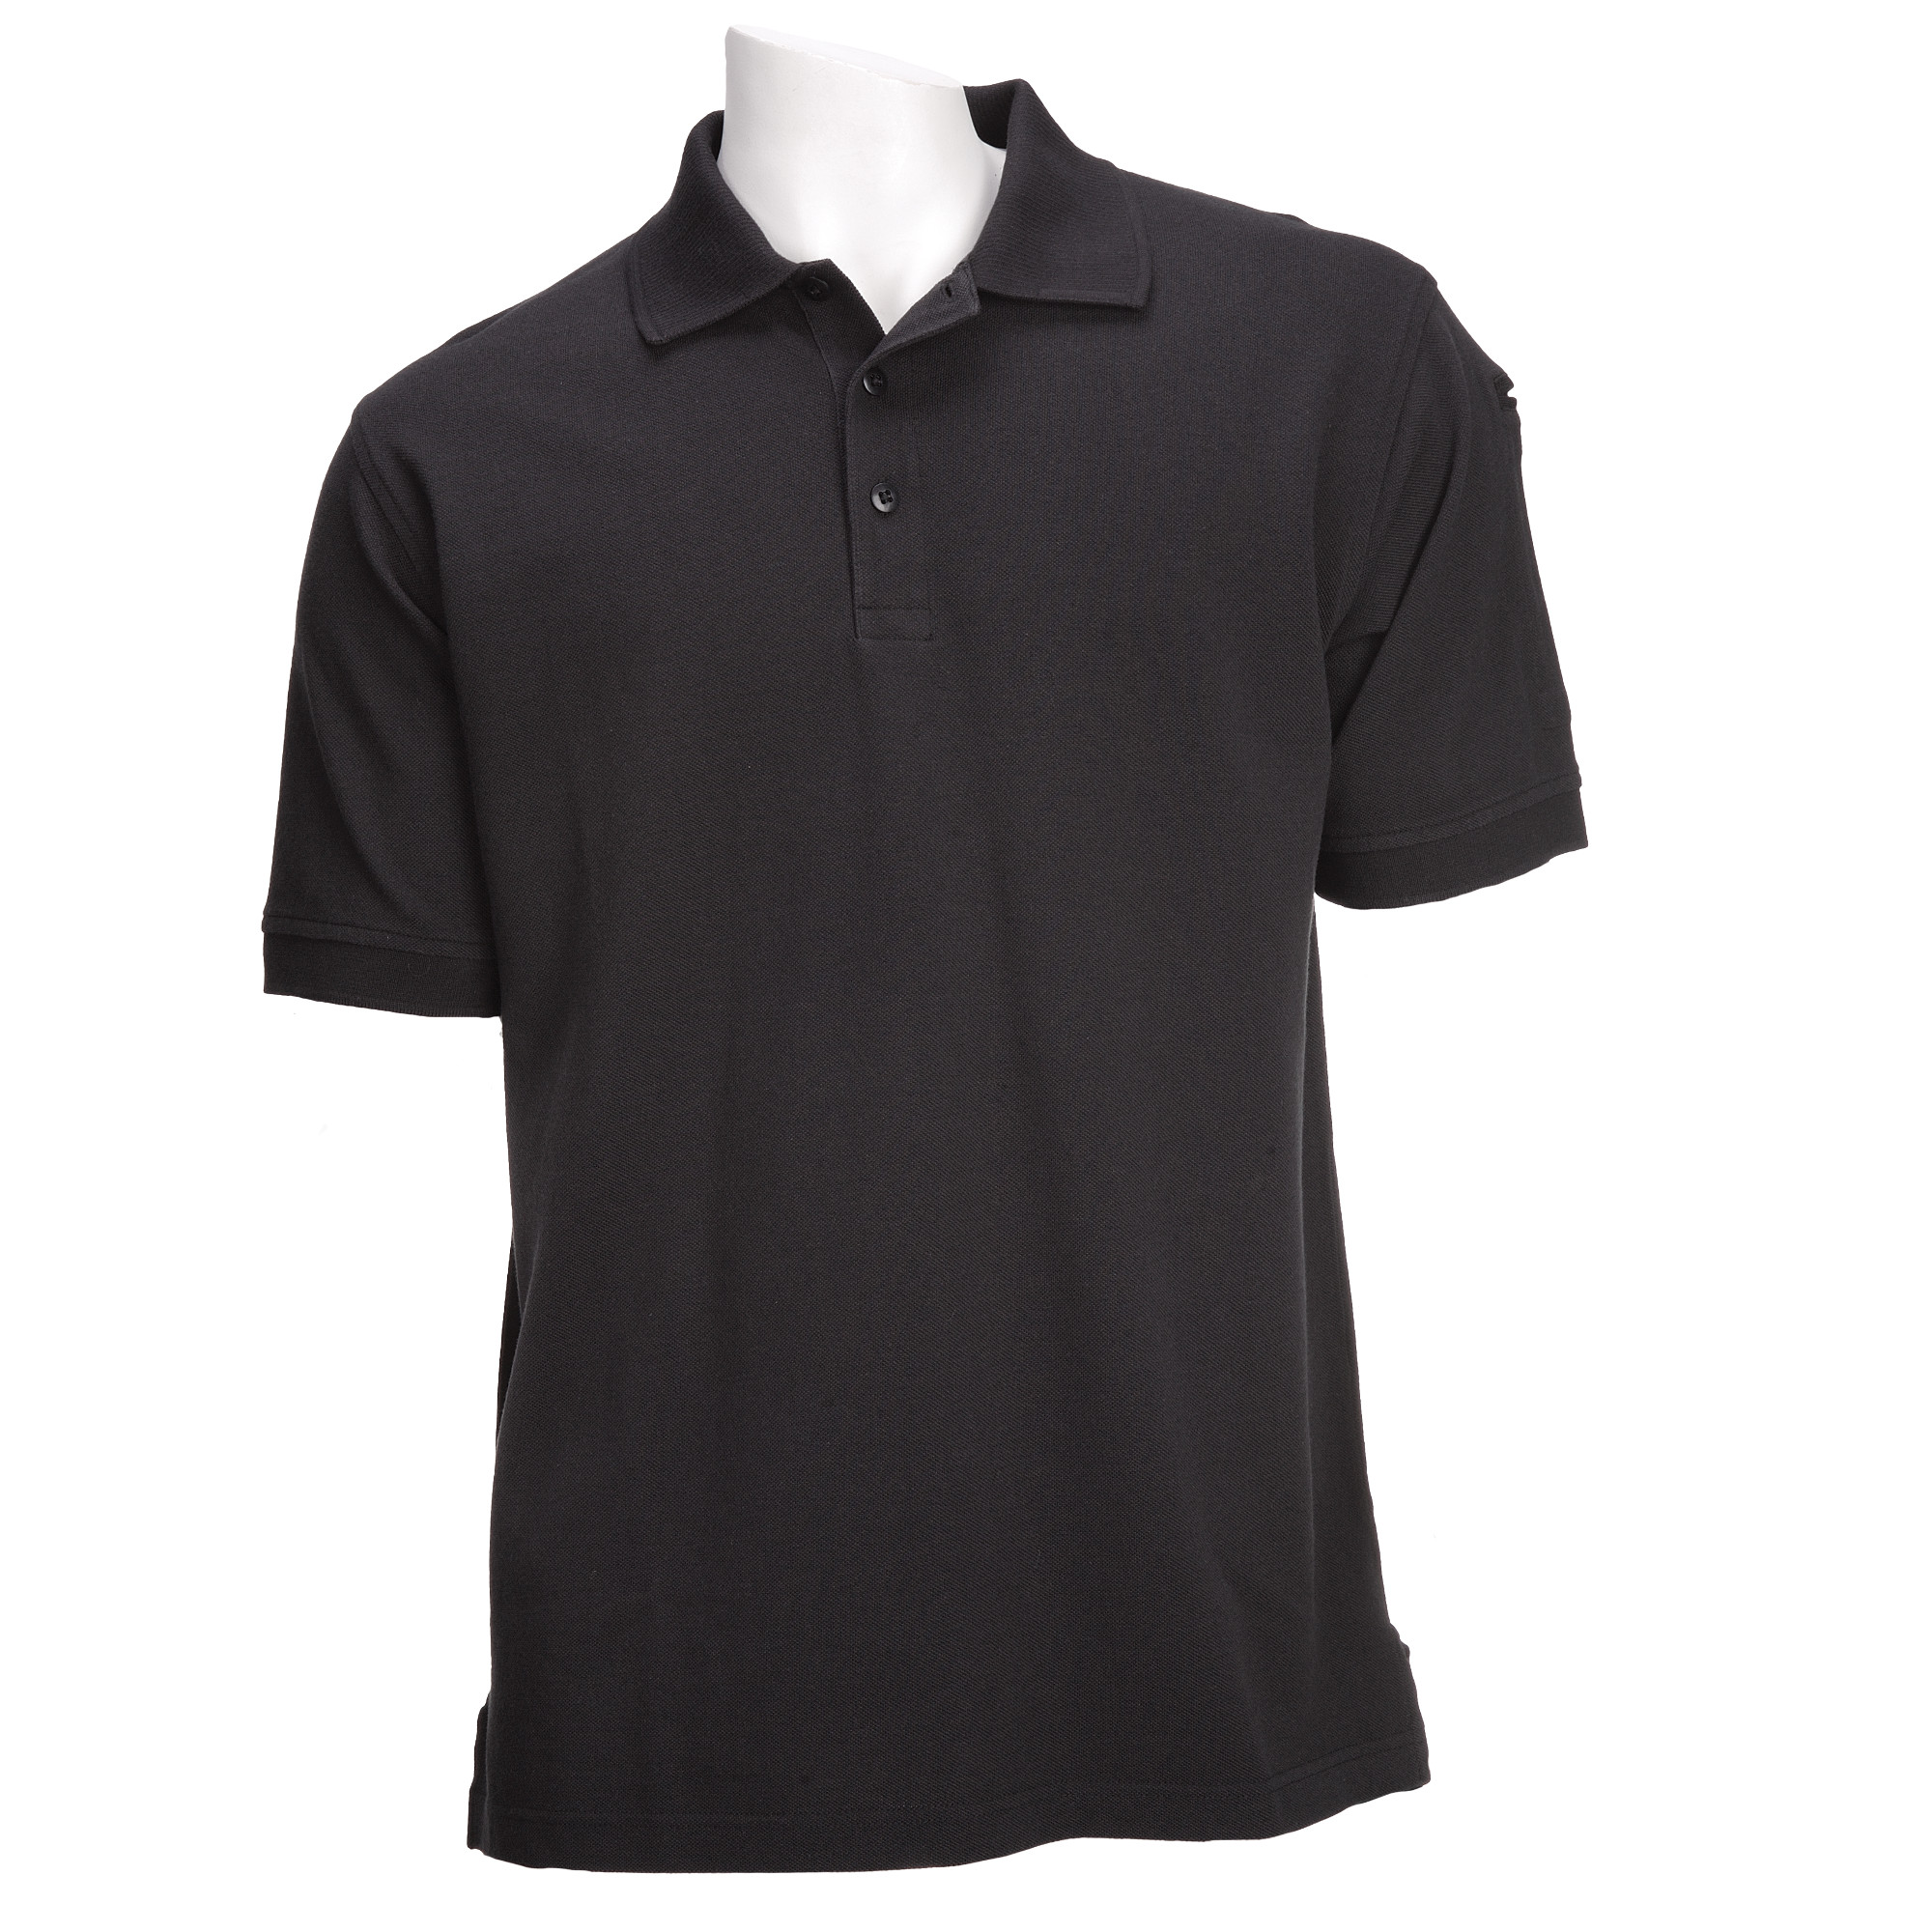 5.11 Mens Short Sleeve Professional Polo 41060